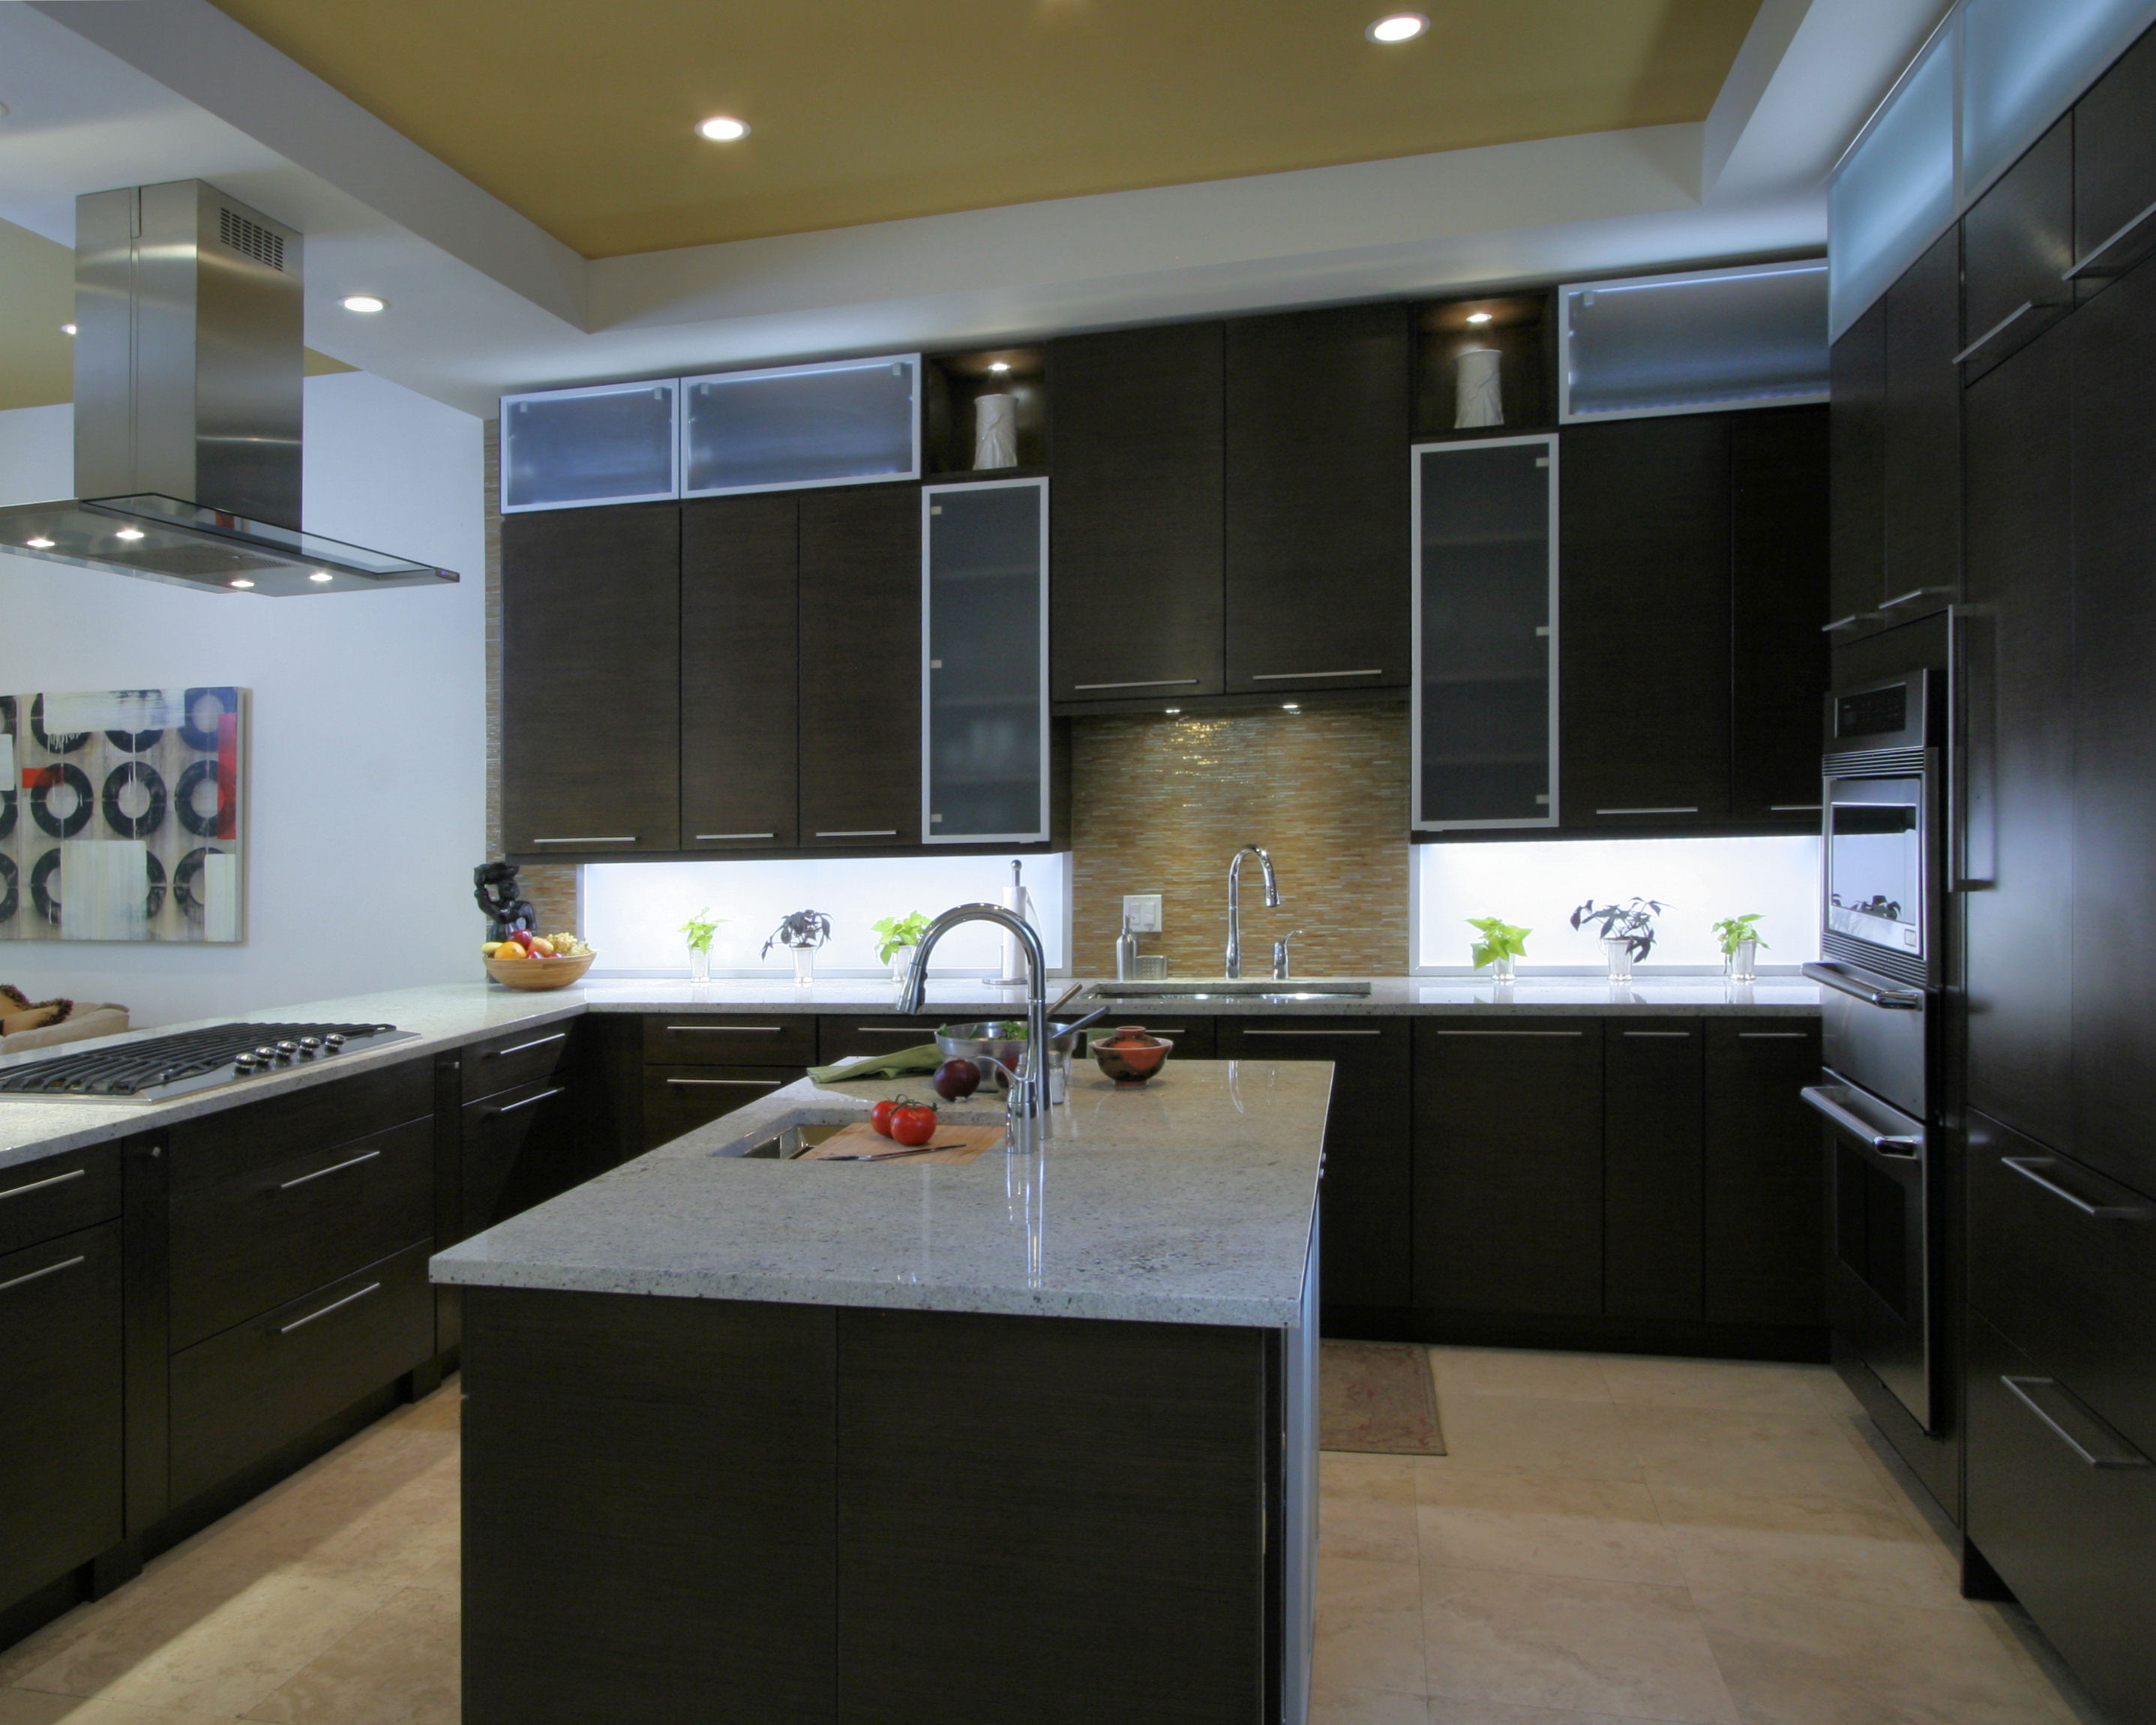 accent or task lighting kitchen under cabinet lighting kitchen under cabinet lighting great task lighting